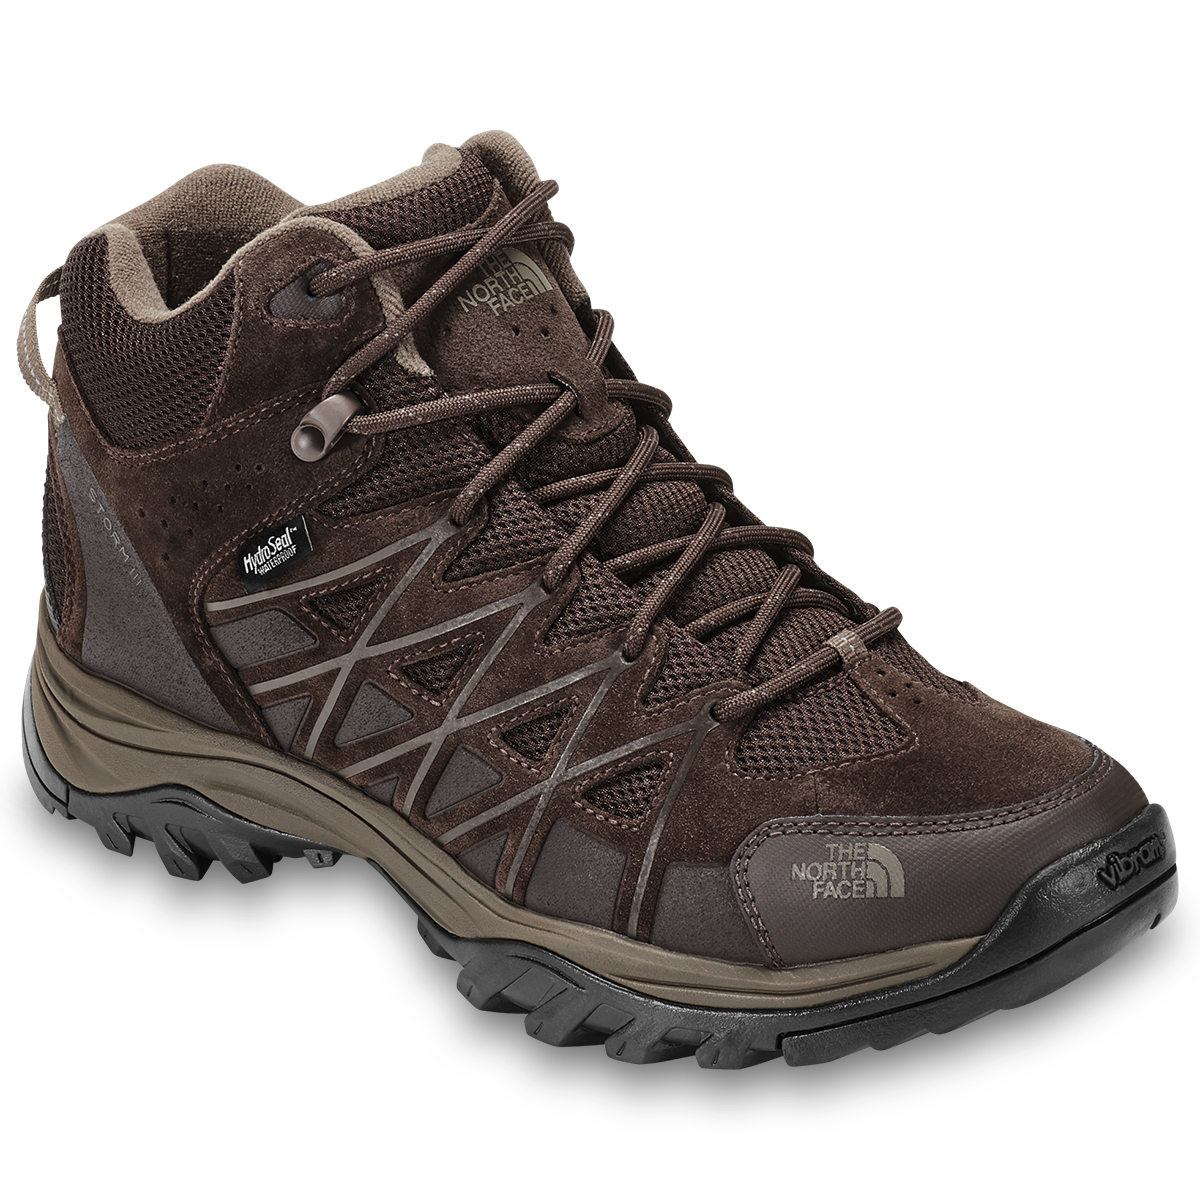 The North Face Men's Storm 3 Waterproof Hiking Boots - Brown, 12